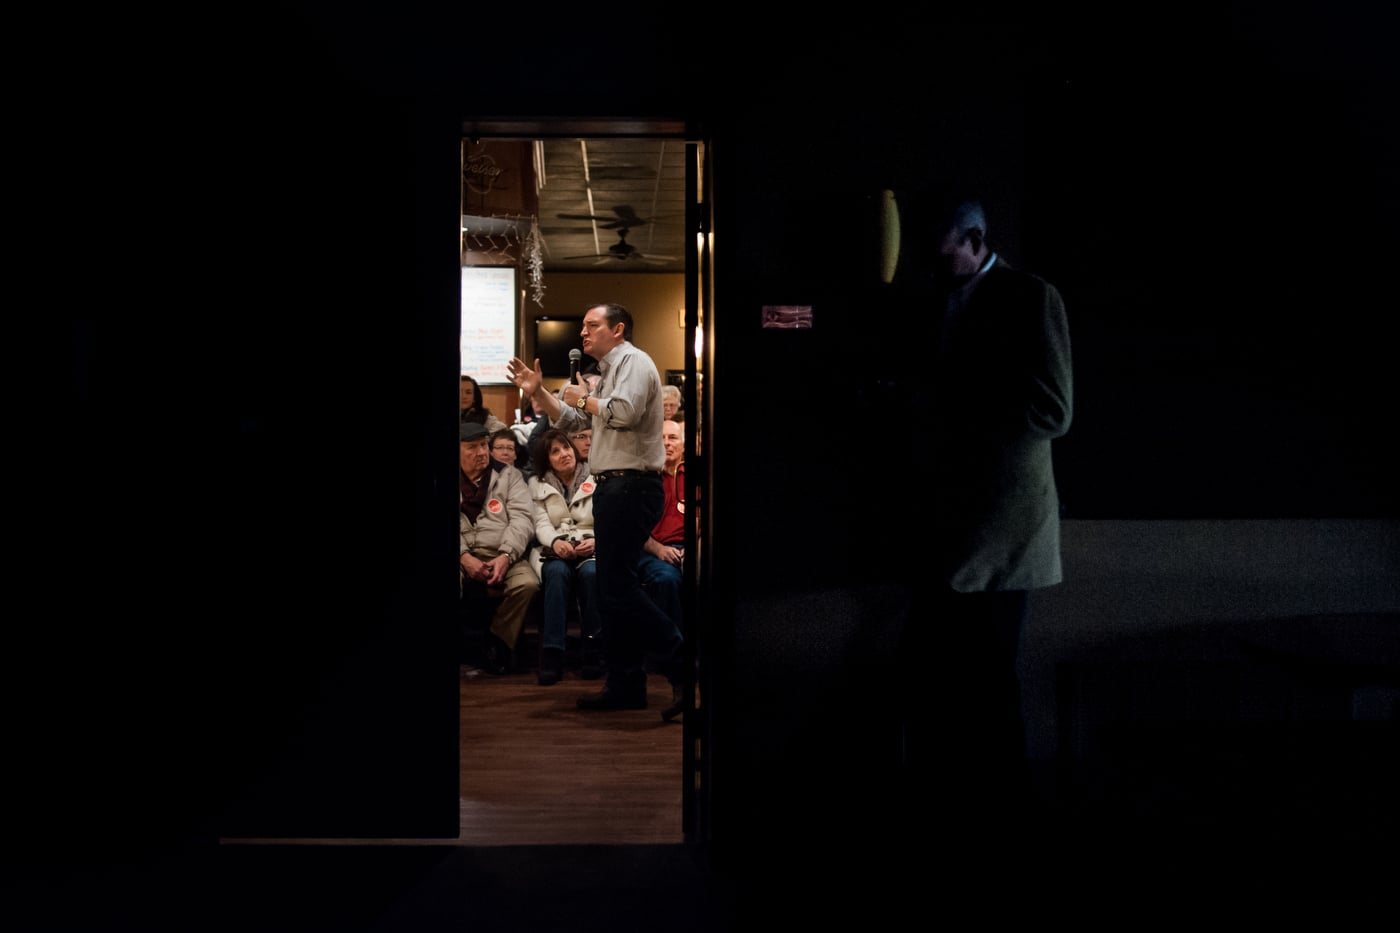 U.S. Republican presidential candidate Ted Cruz is seen from an adjacent room as he speaks at Charlie's Steakhouse at the Carrollton Inn in Carroll, Iowa January 4, 2016. REUTERS/Mark Kauzlarich